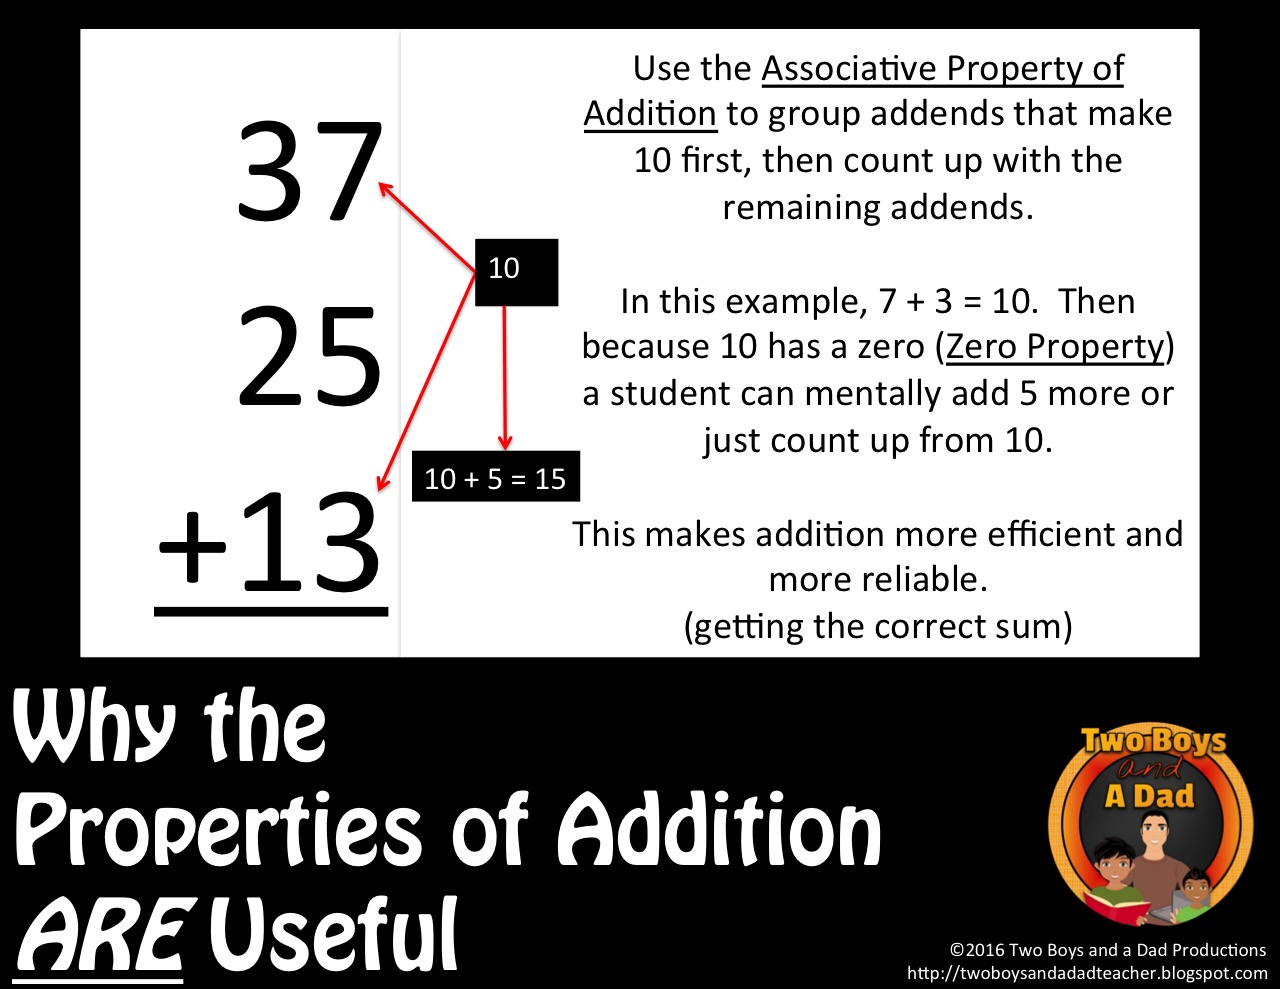 Why are the properties of Addition Useful?